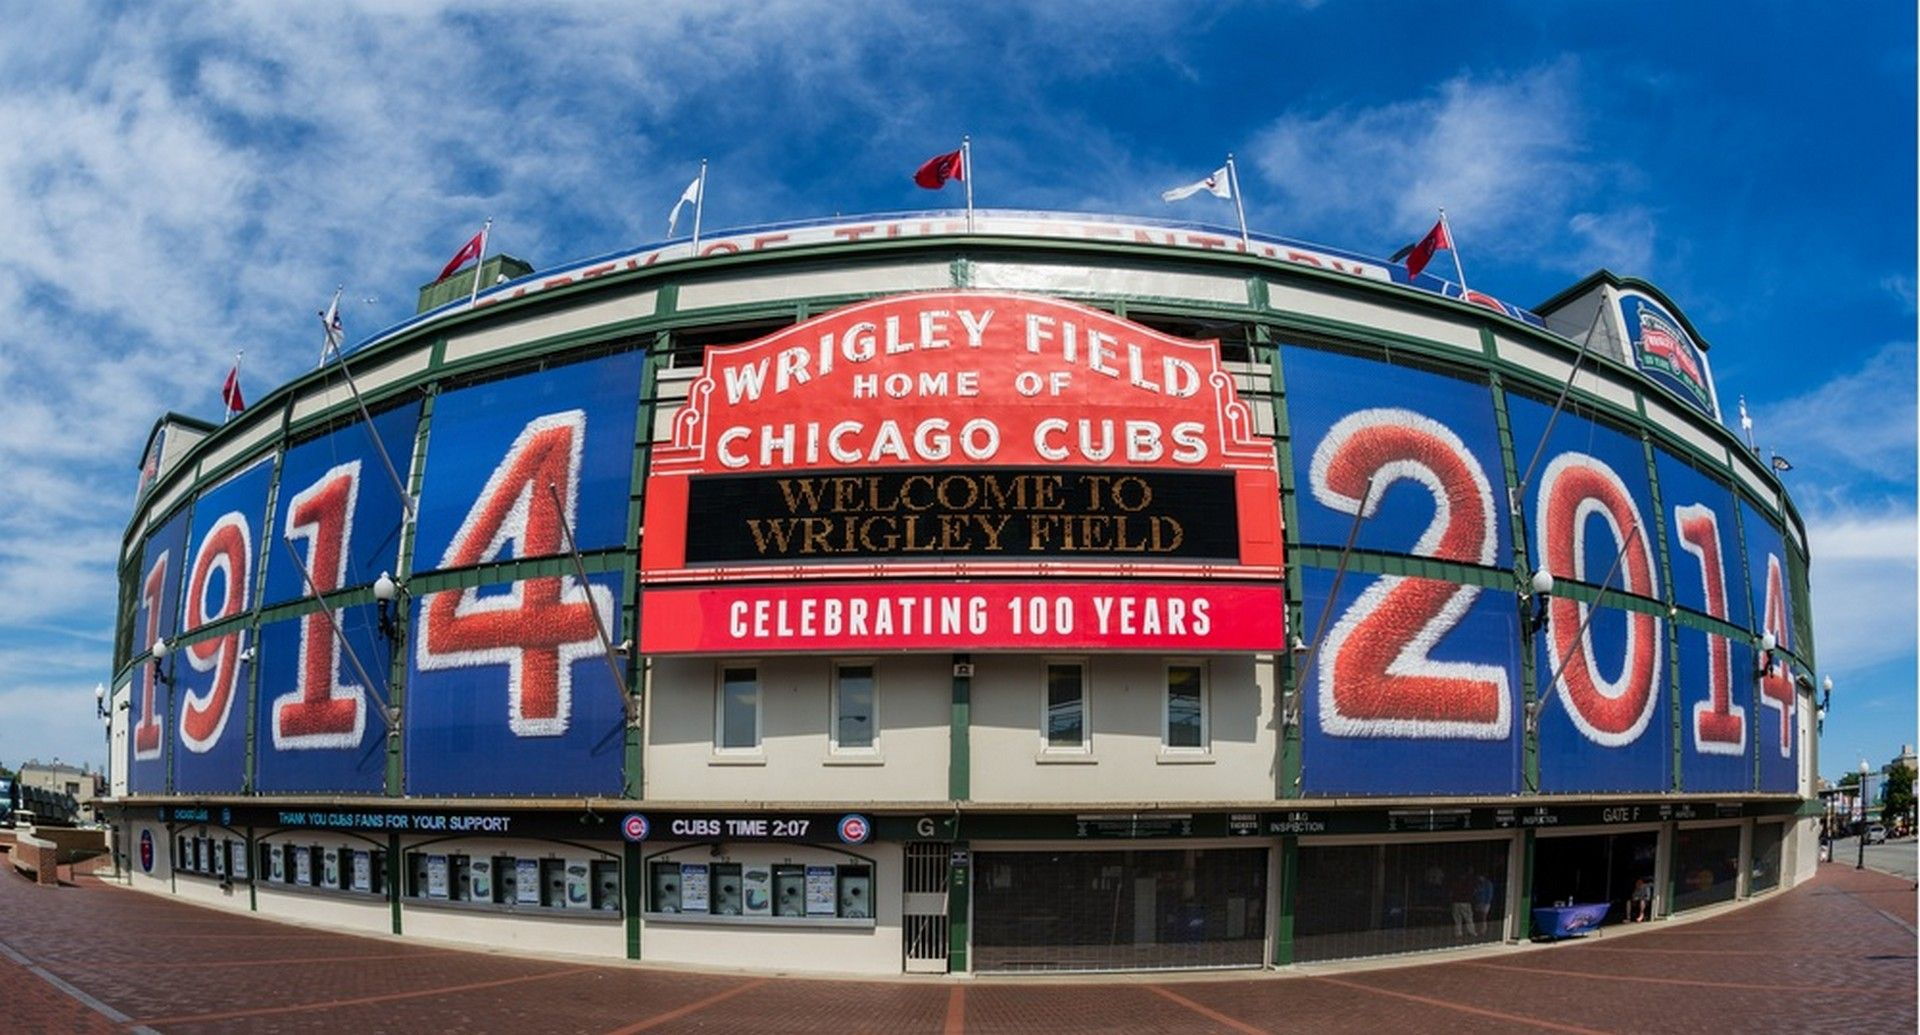 Hd Wrigley Field Wallpaper Chicago Attractions Wrigley Field Cleveland Indians World Series